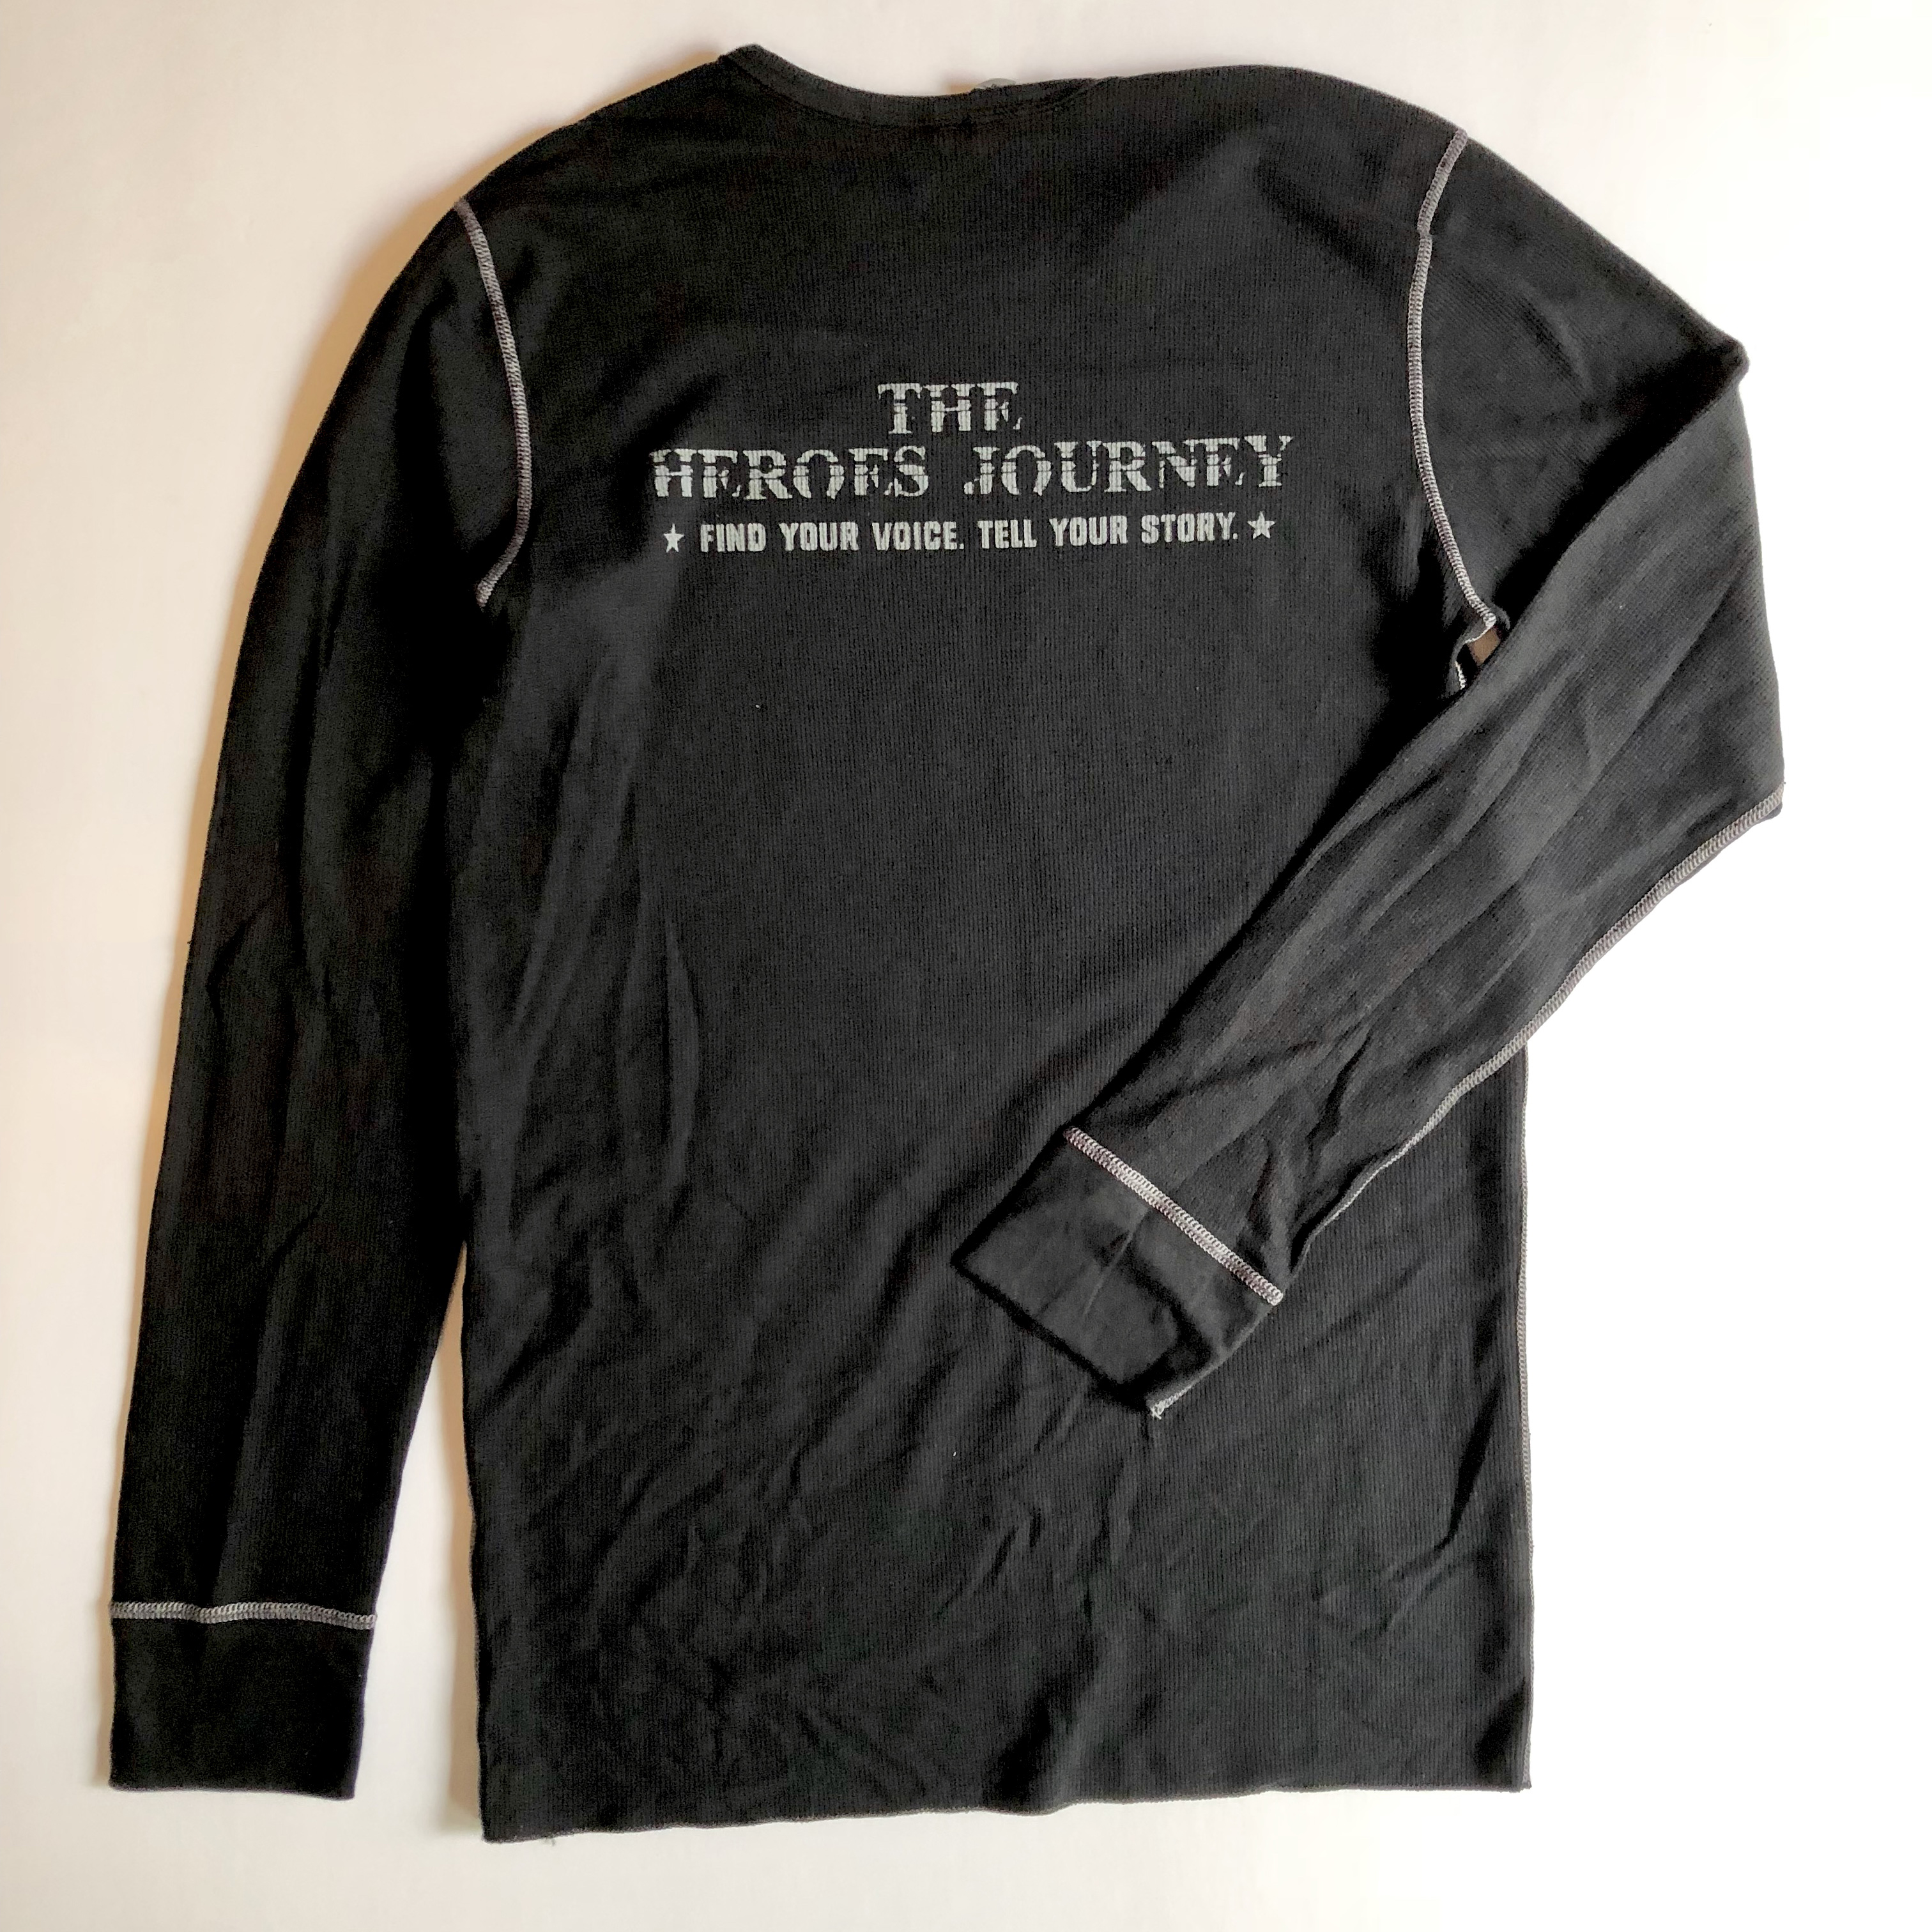 The Heroes Journey Long Sleeve T-Shirt - Black